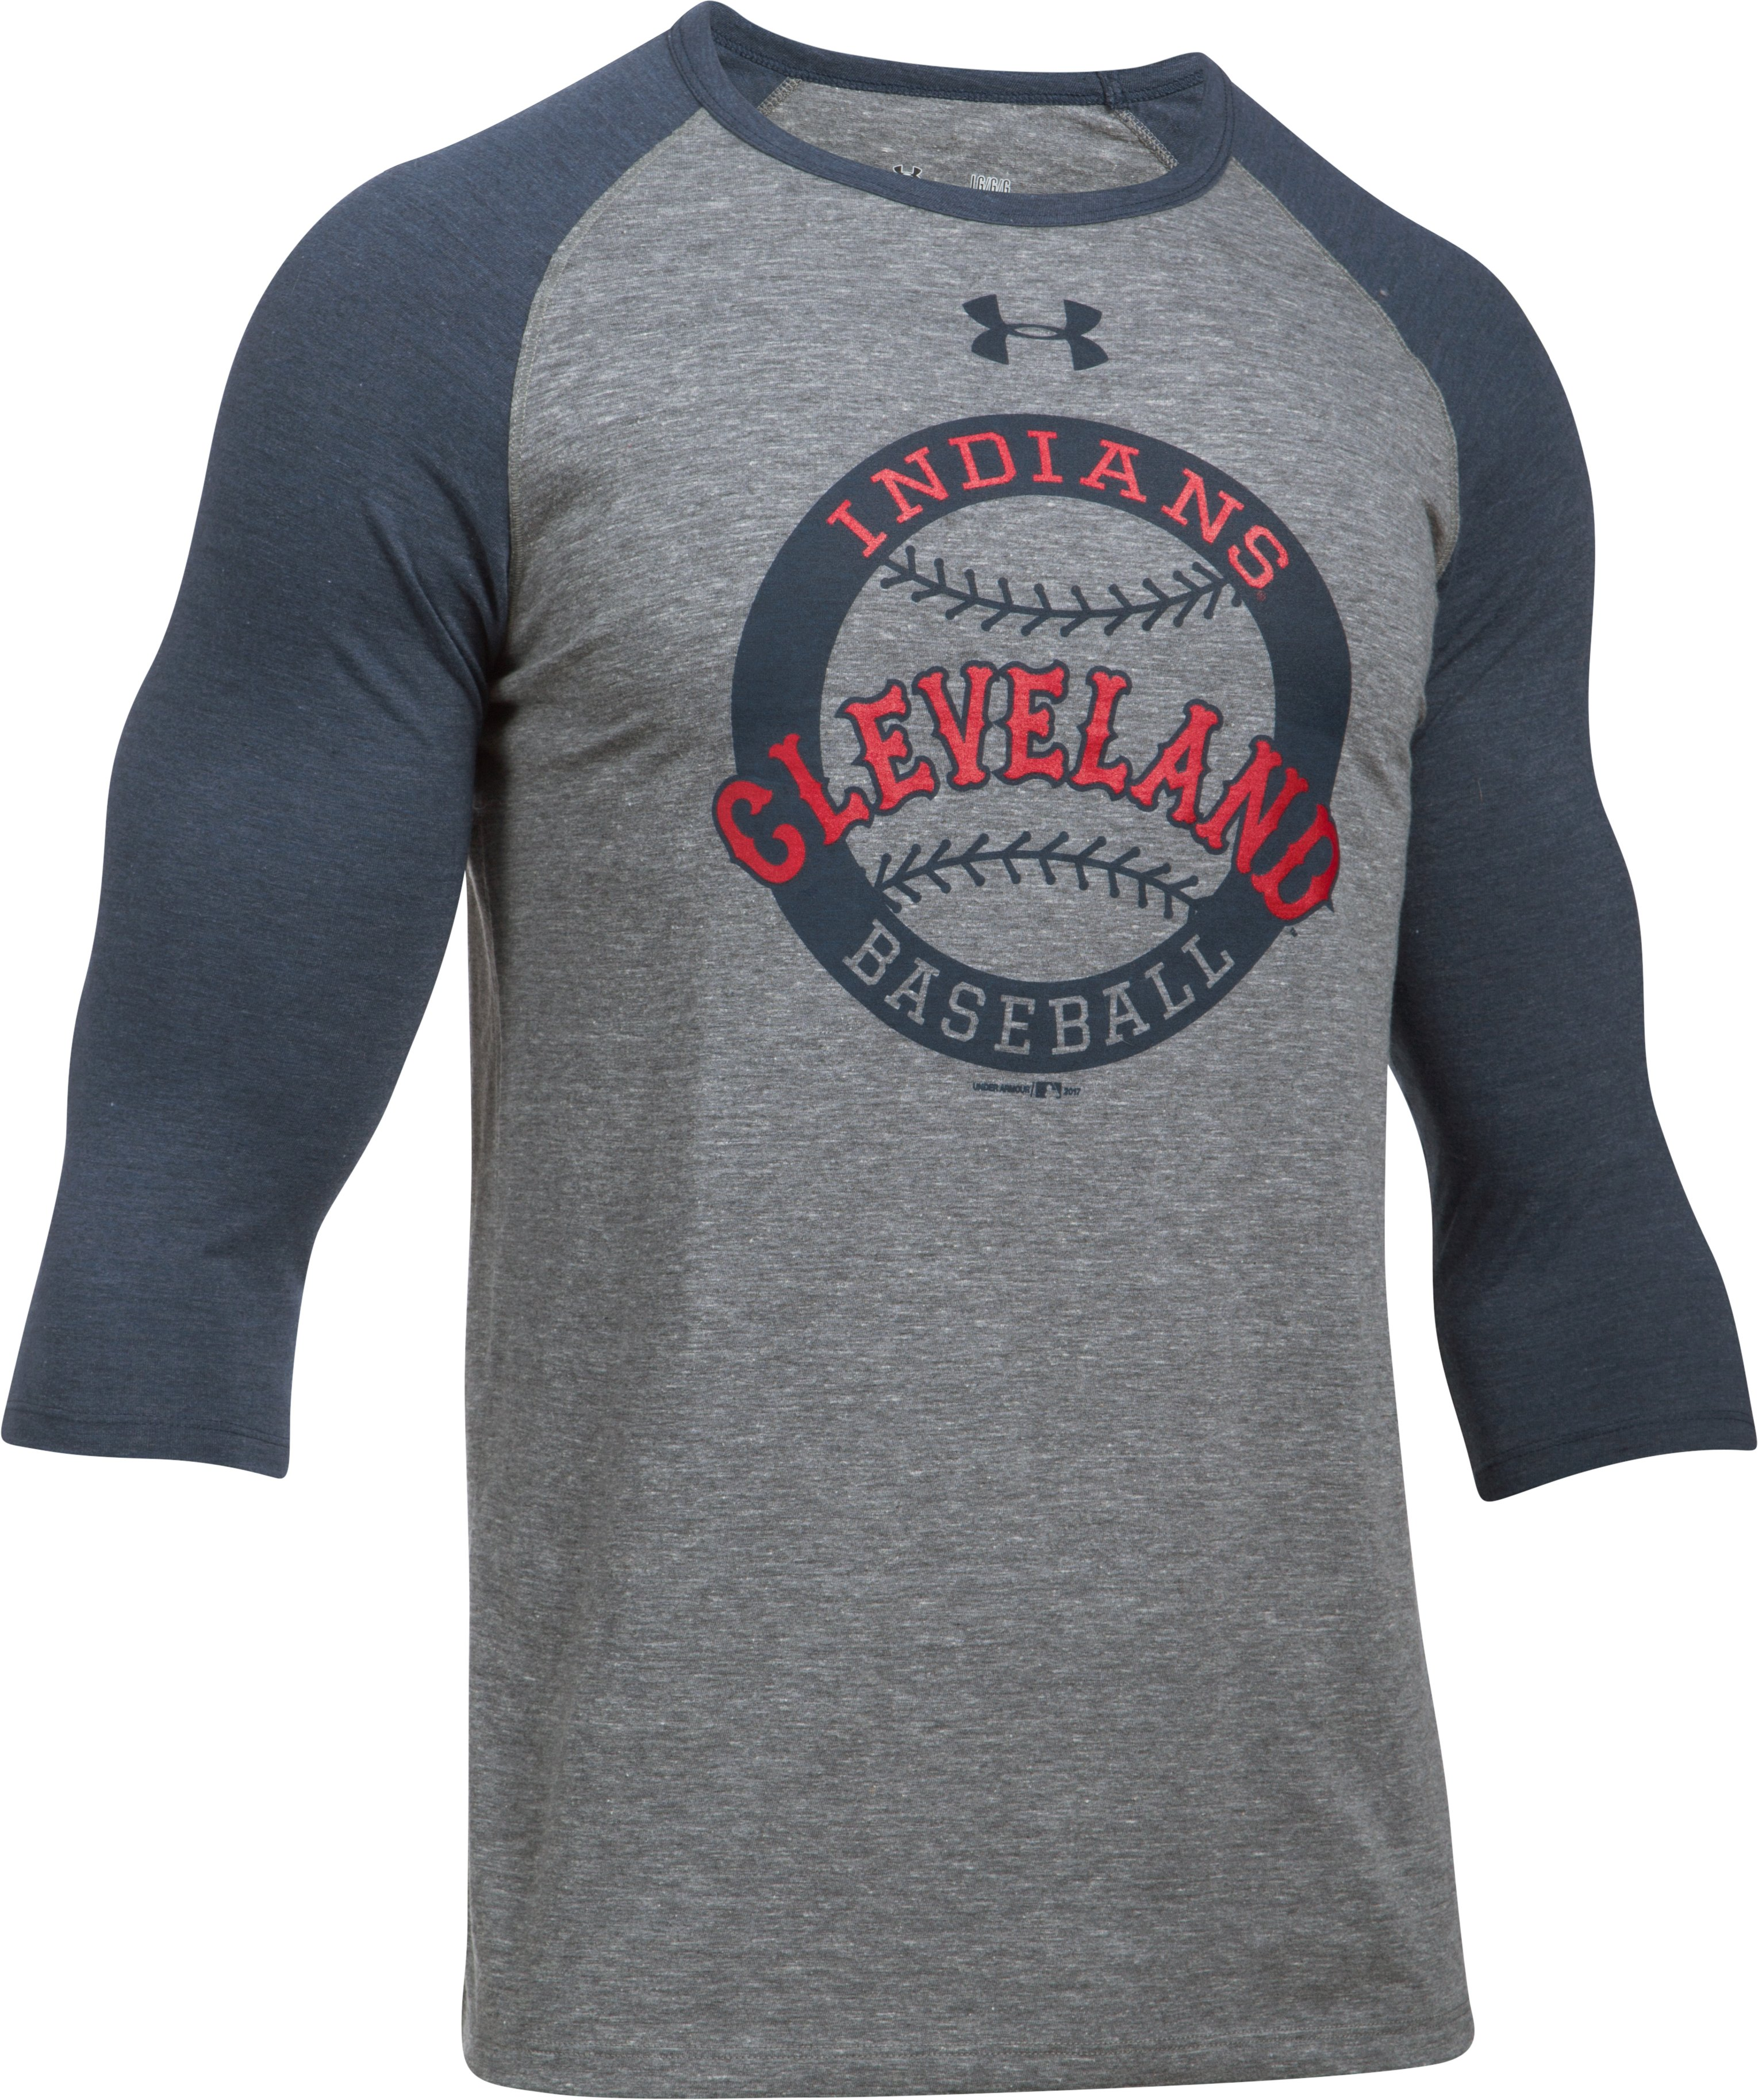 Men's Cleveland Indians ¾ Sleeve T-Shirt, Midnight Navy,